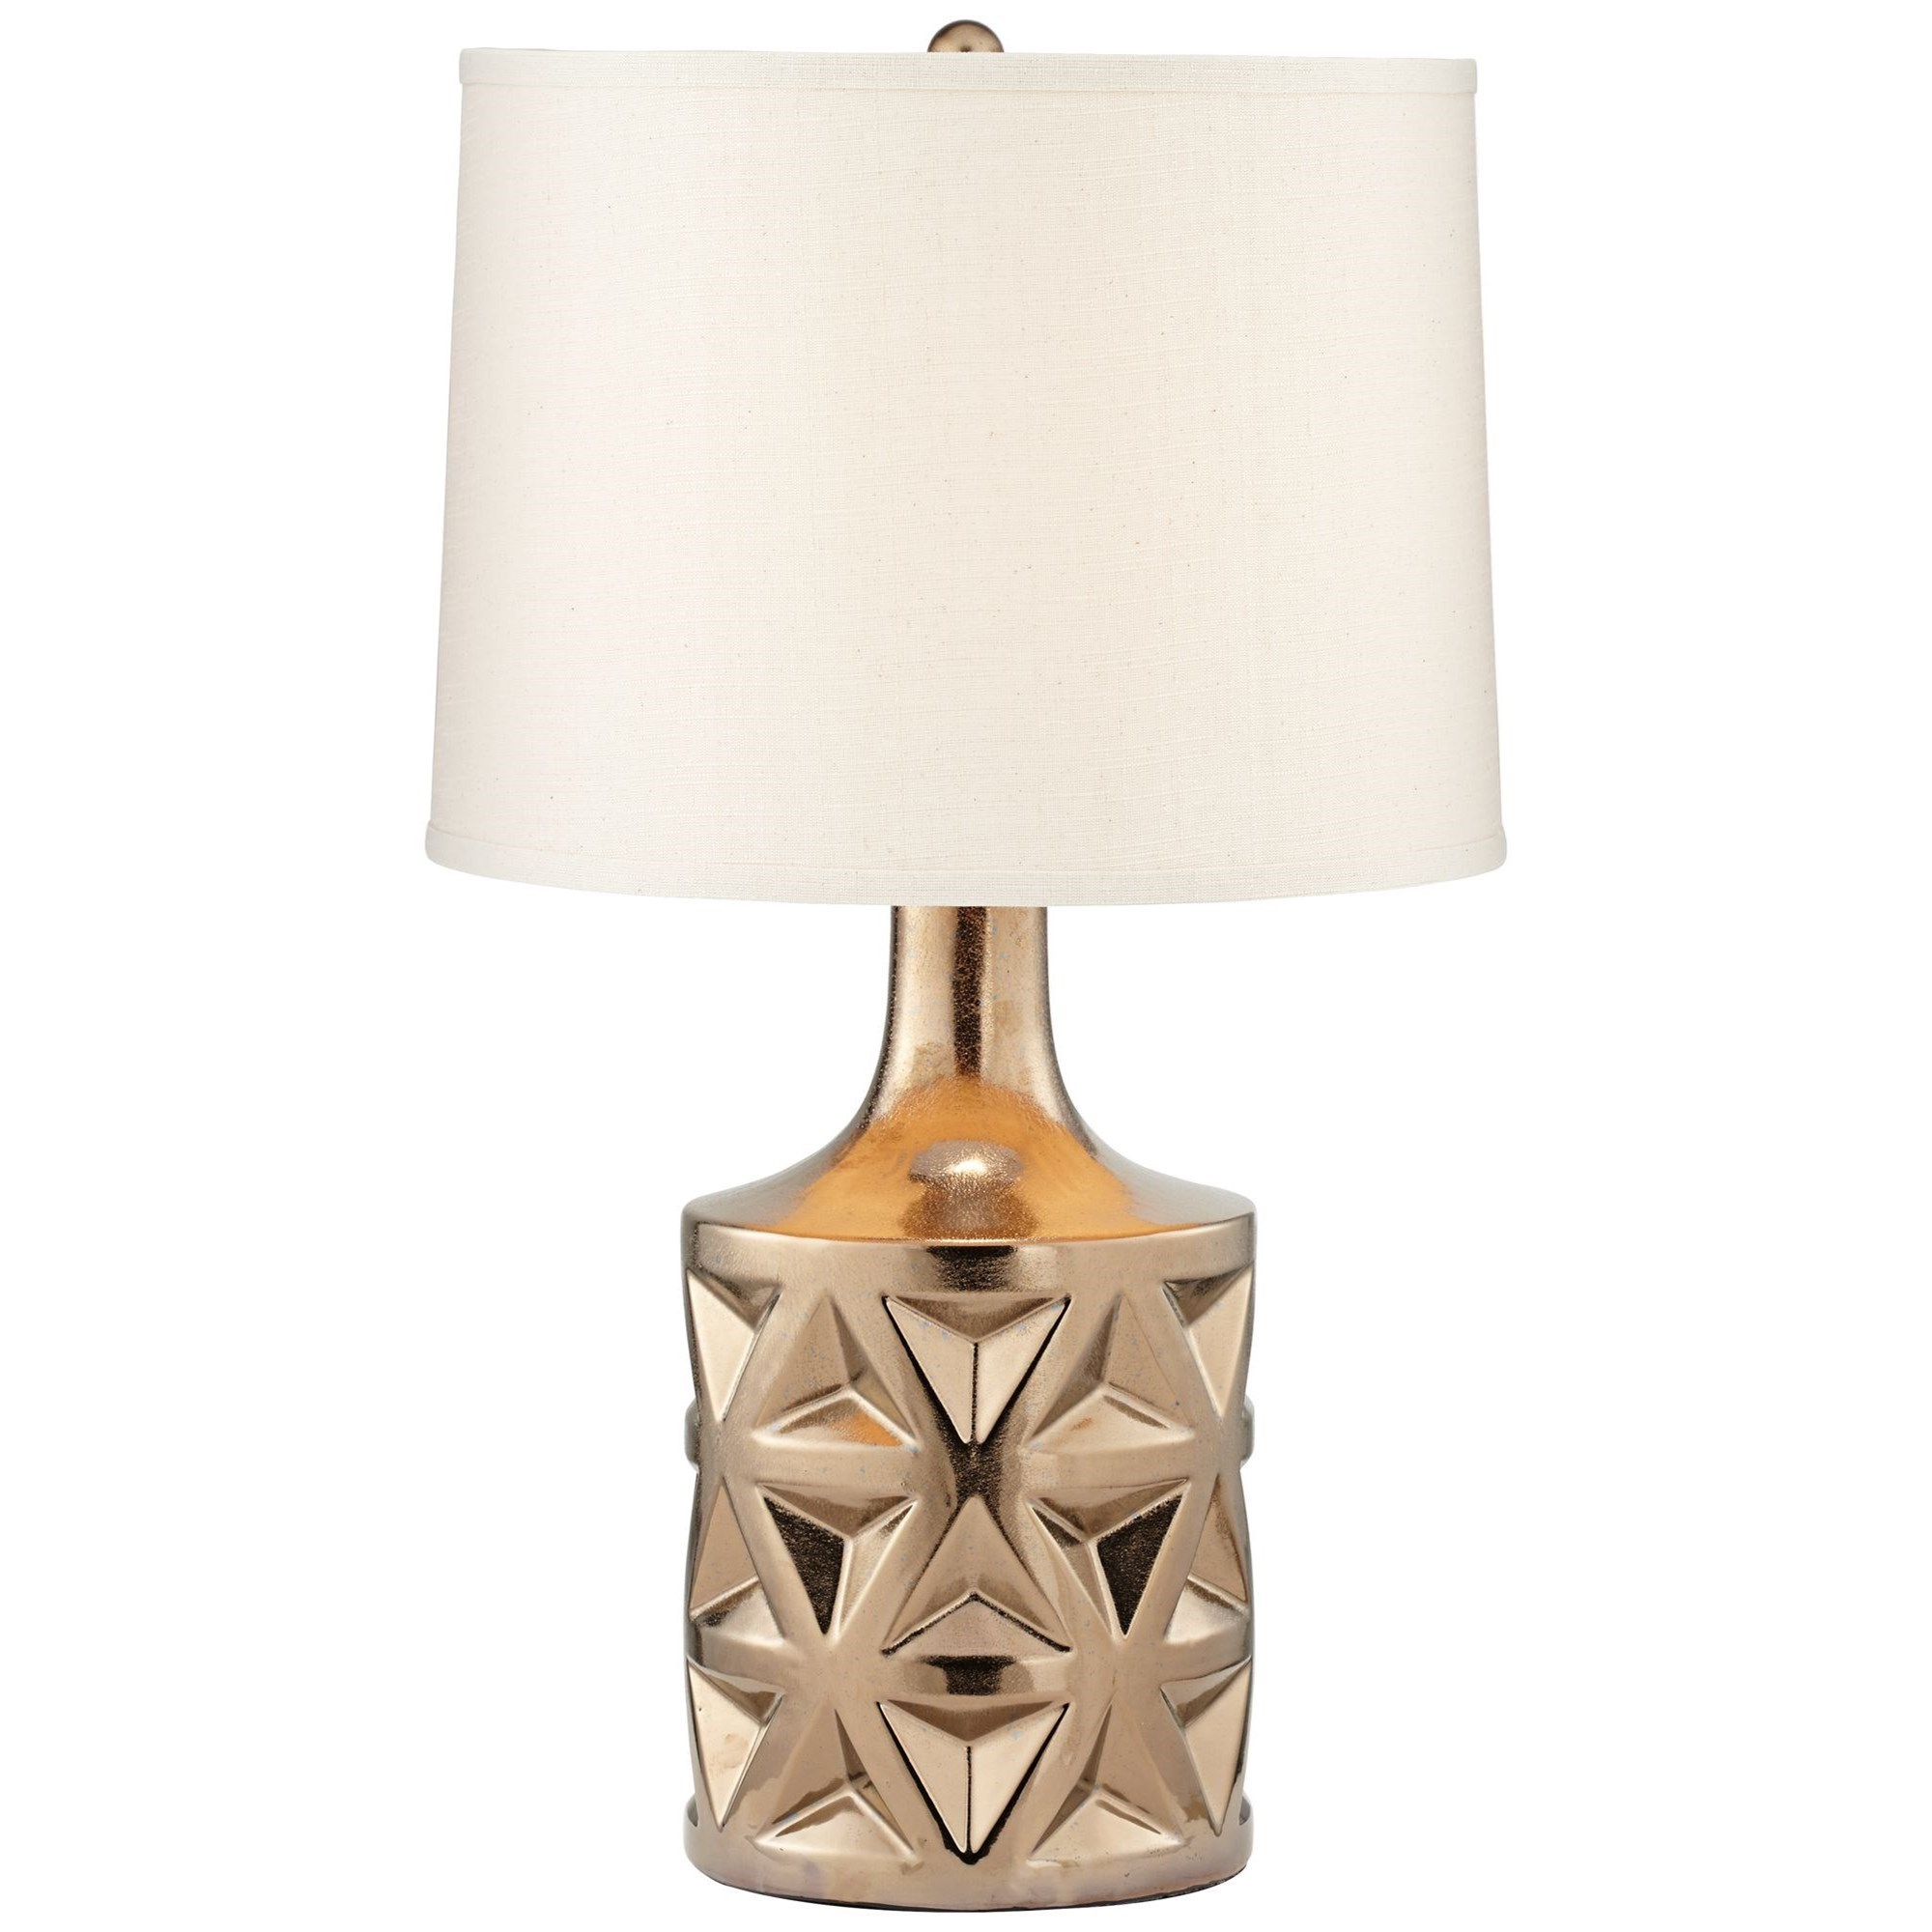 Pacific Coast Lighting Table Lamps Kathy Ireland Geo Ceramic Metallic  Bronze Table Lamp